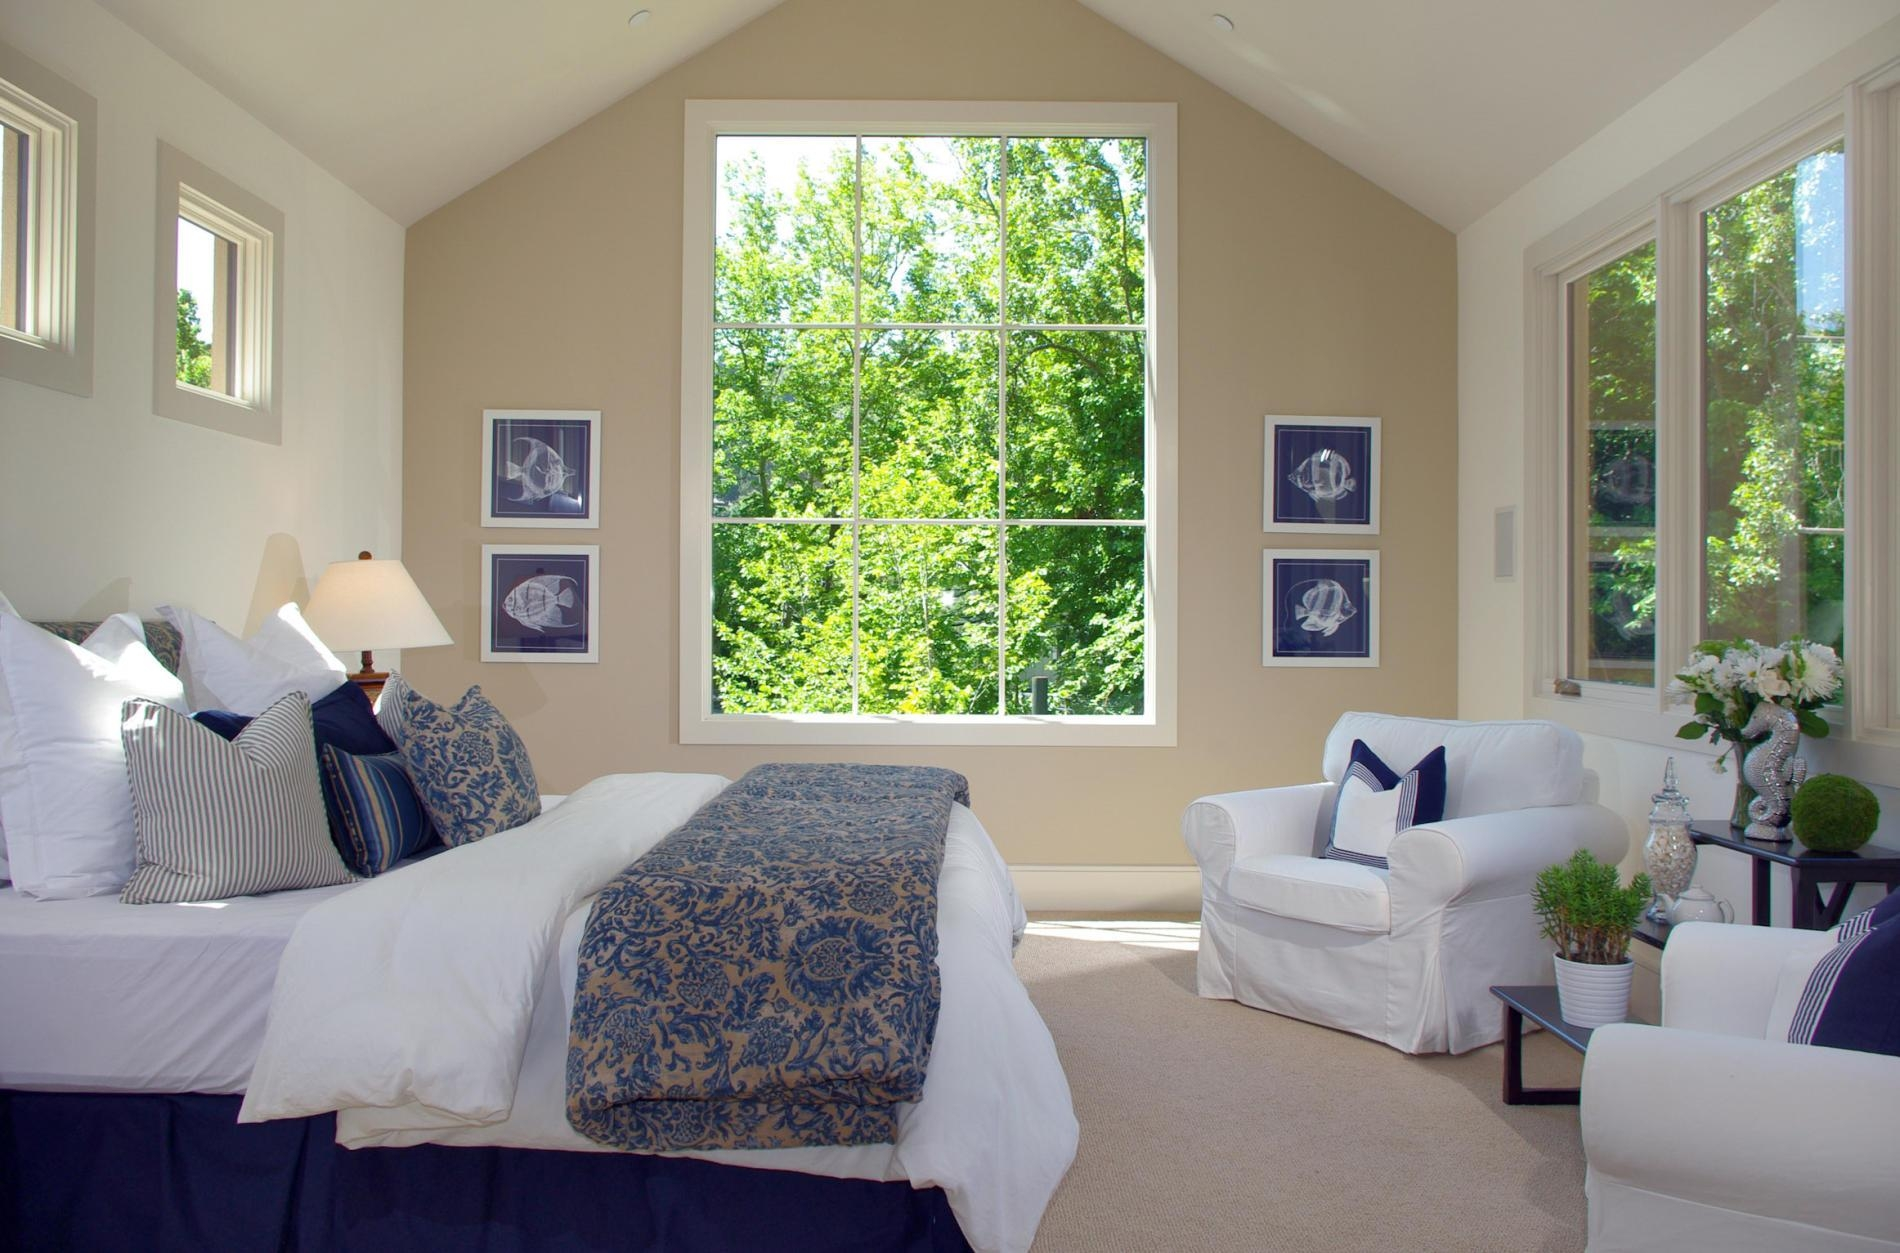 Bring Beach To Your House With Coastal Wall Decor — Unique Within Beach Wall Art For Bedroom (View 17 of 20)